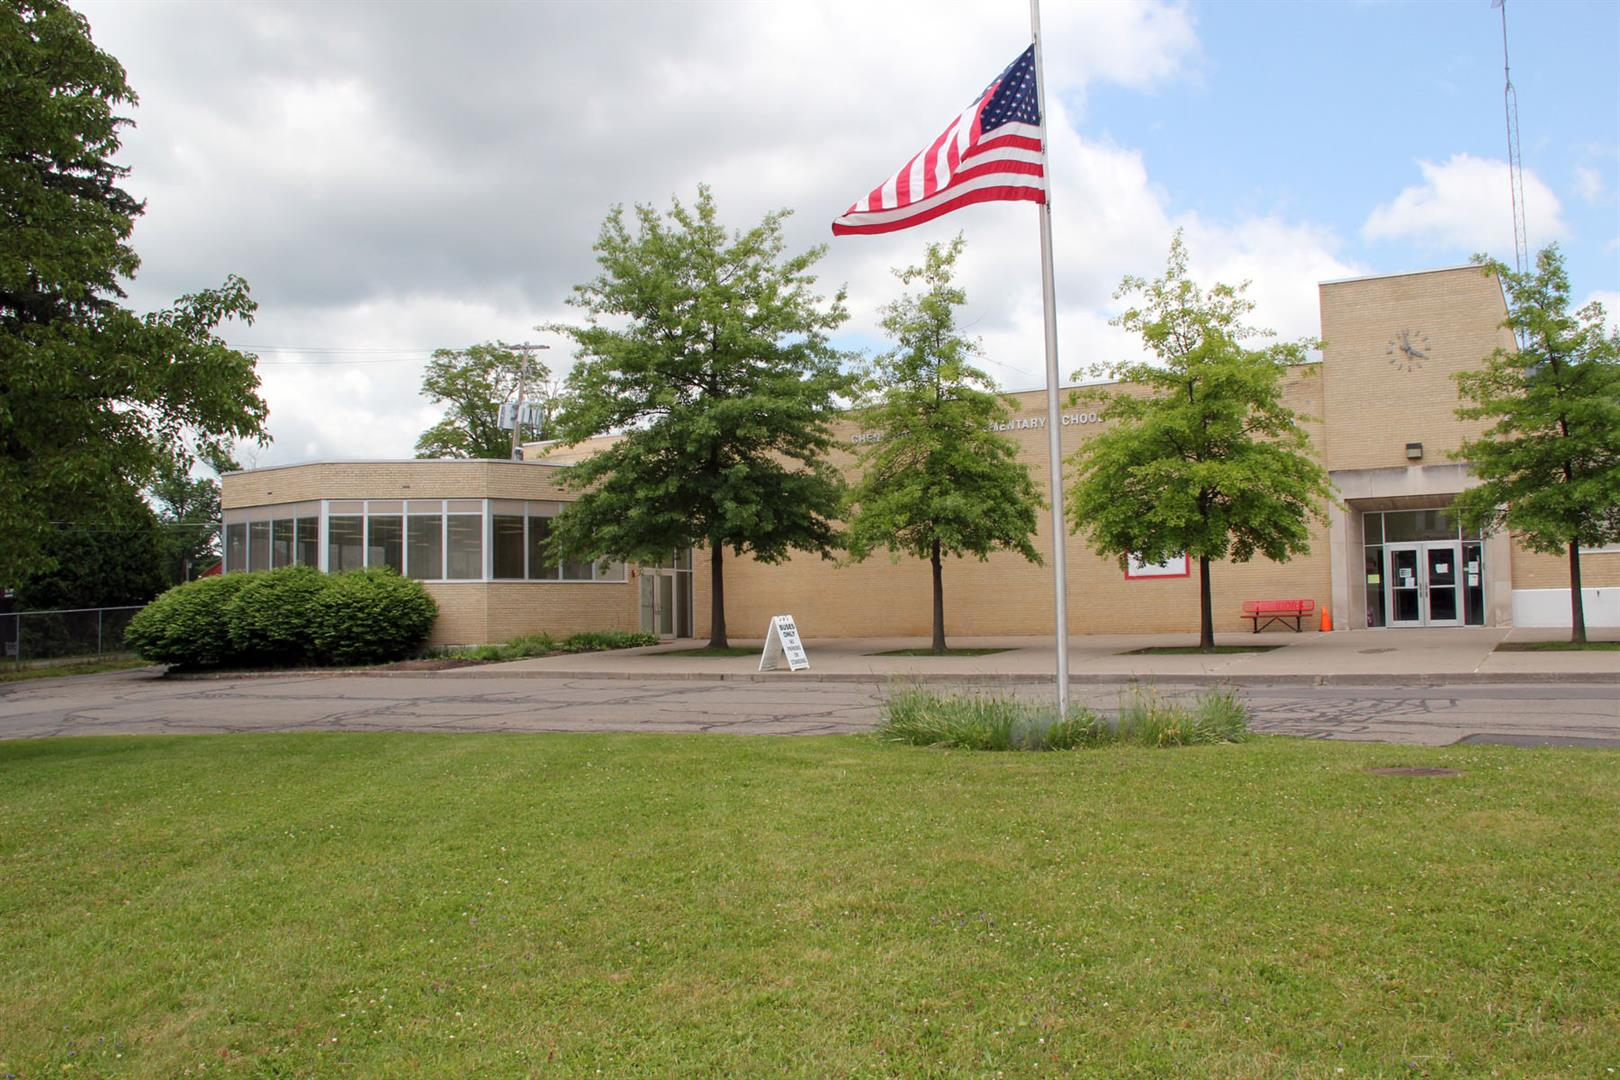 Chenango Bridge Elementary Building